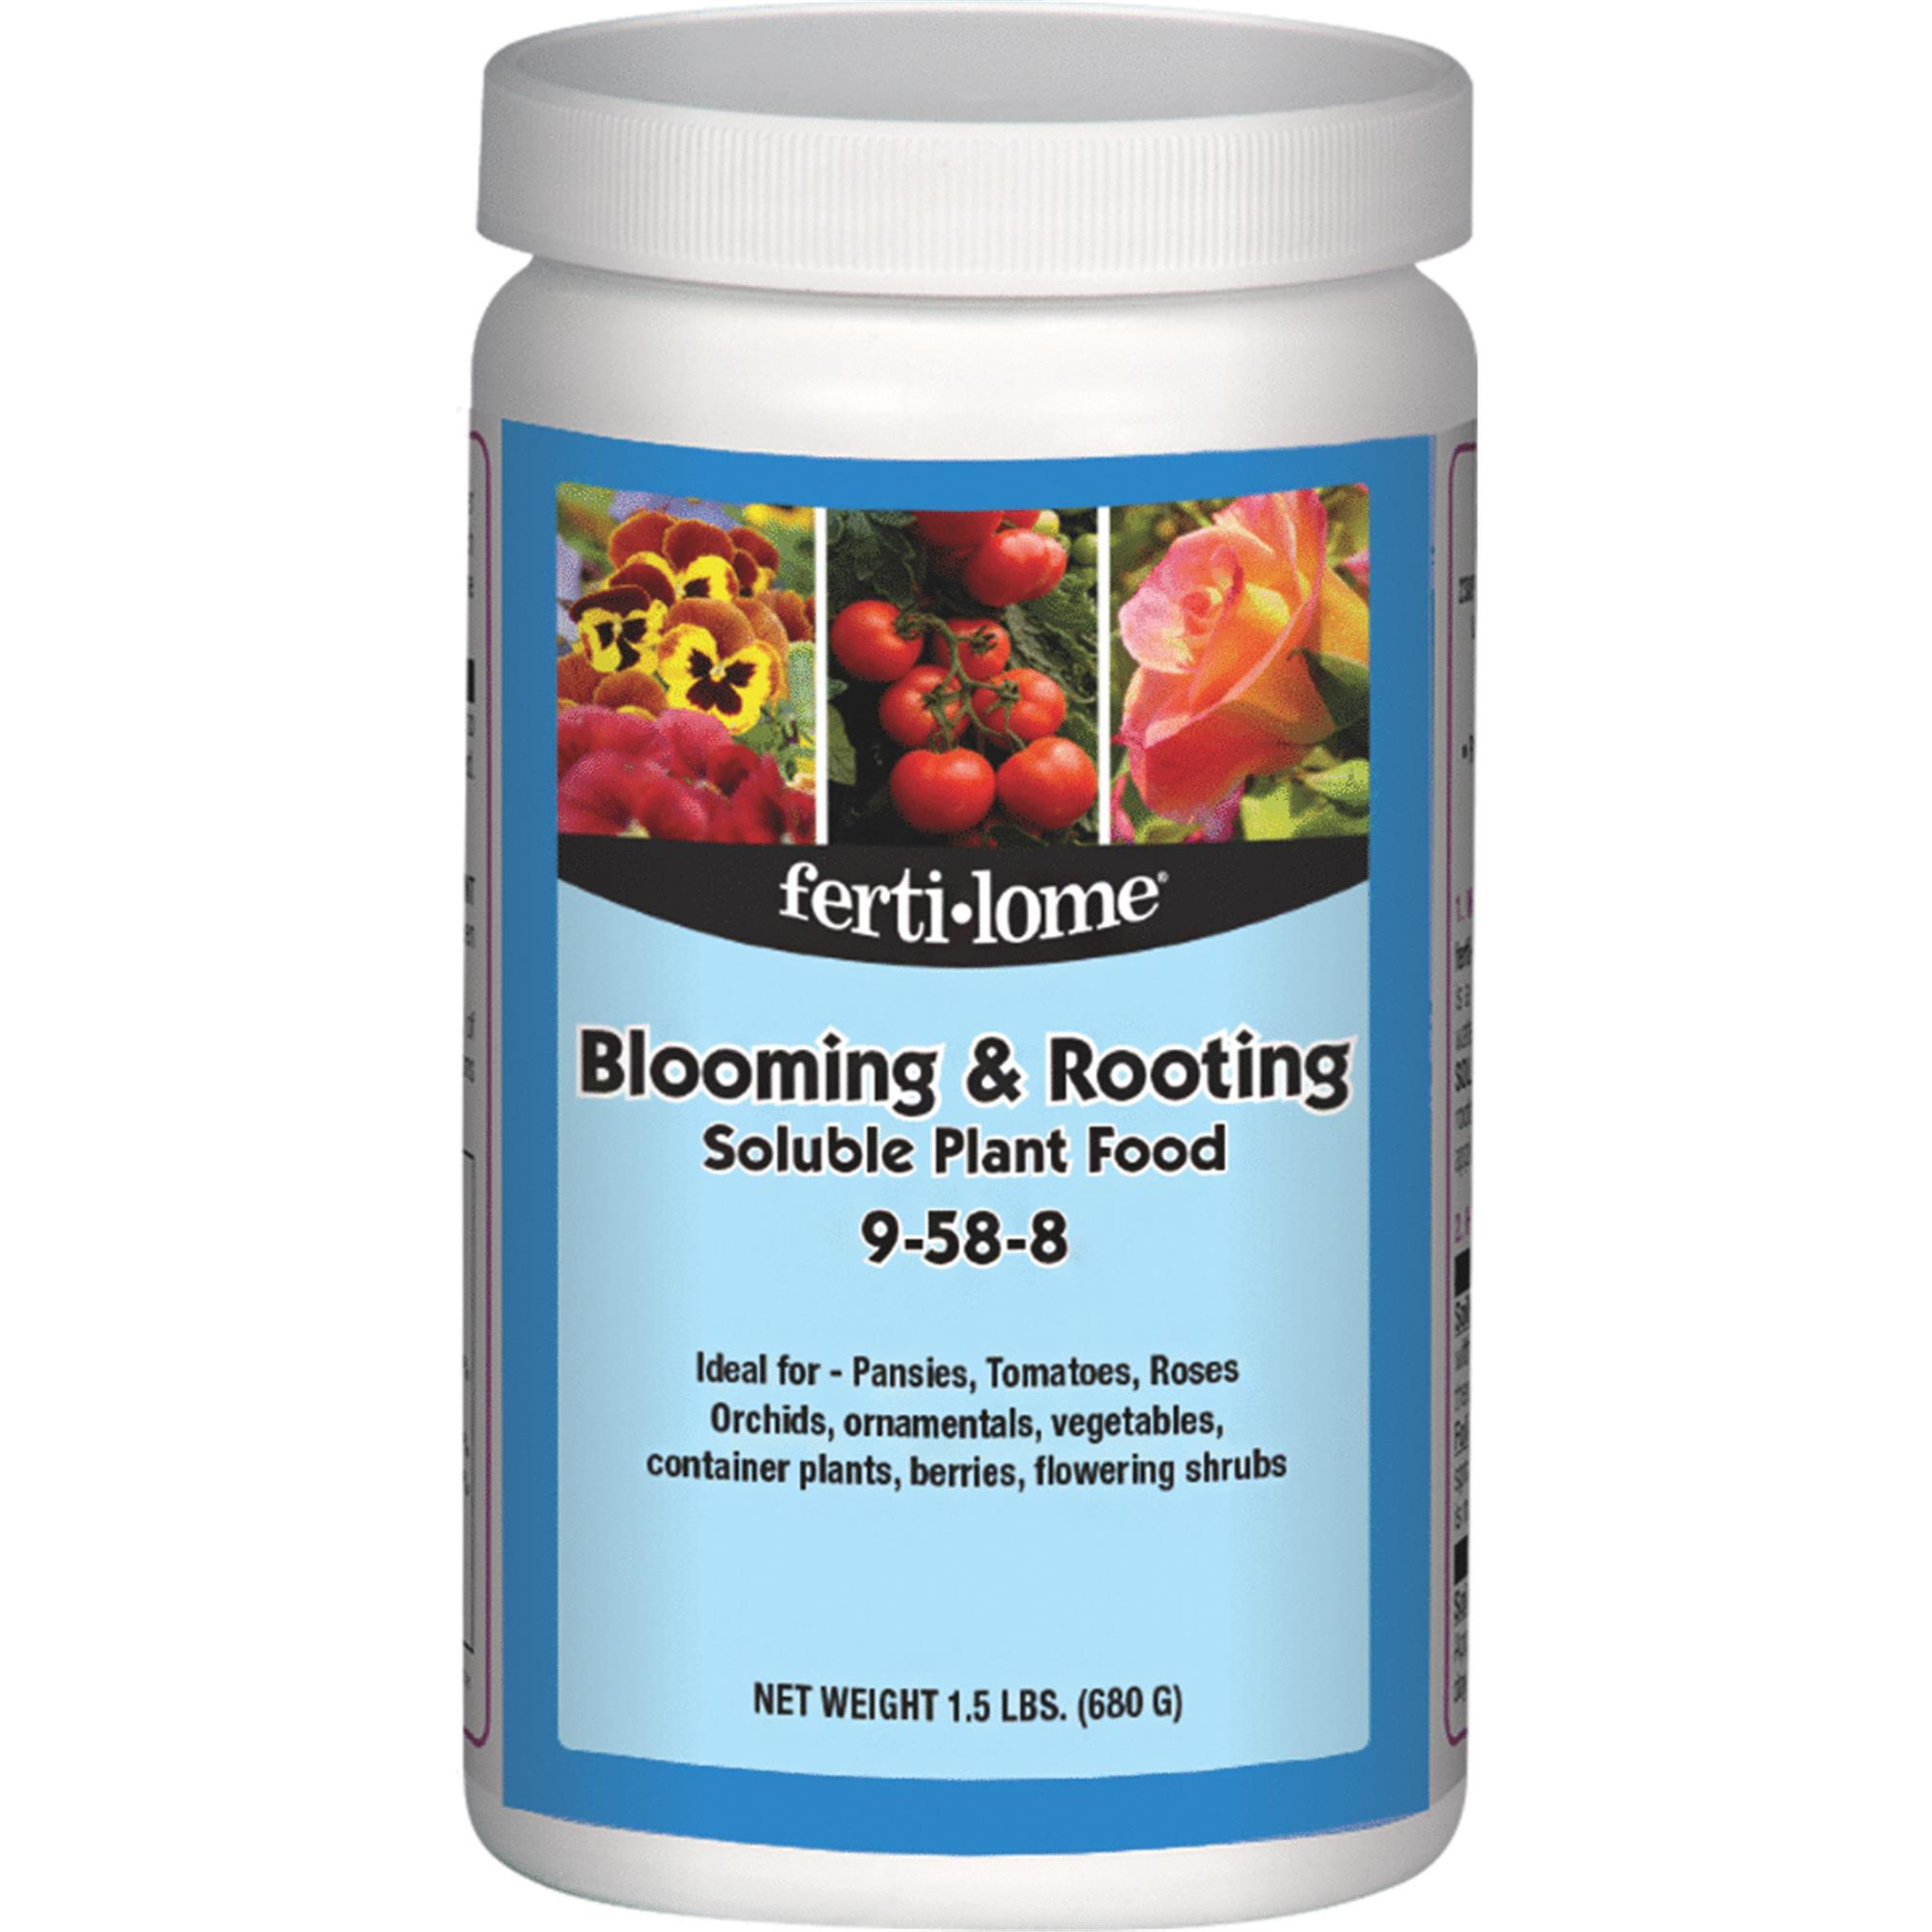 Ferti-lome Bloom And Root Soluble Dry Plant Food - Walmart.com